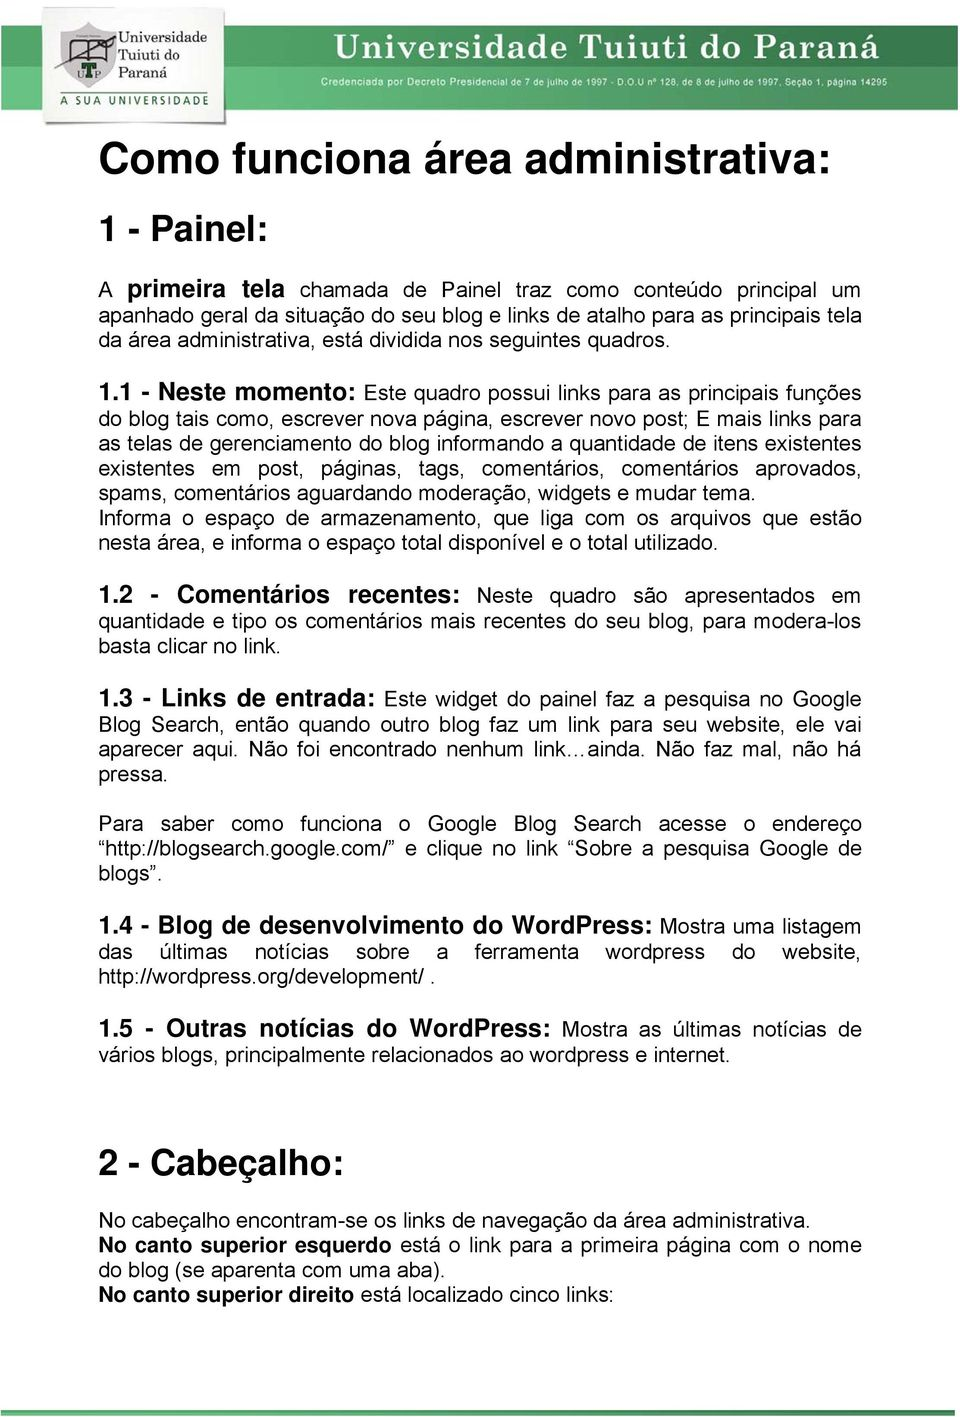 1 - Neste momento: Este quadro possui links para as principais funções do blog tais como, escrever nova página, escrever novo post; E mais links para as telas de gerenciamento do blog informando a